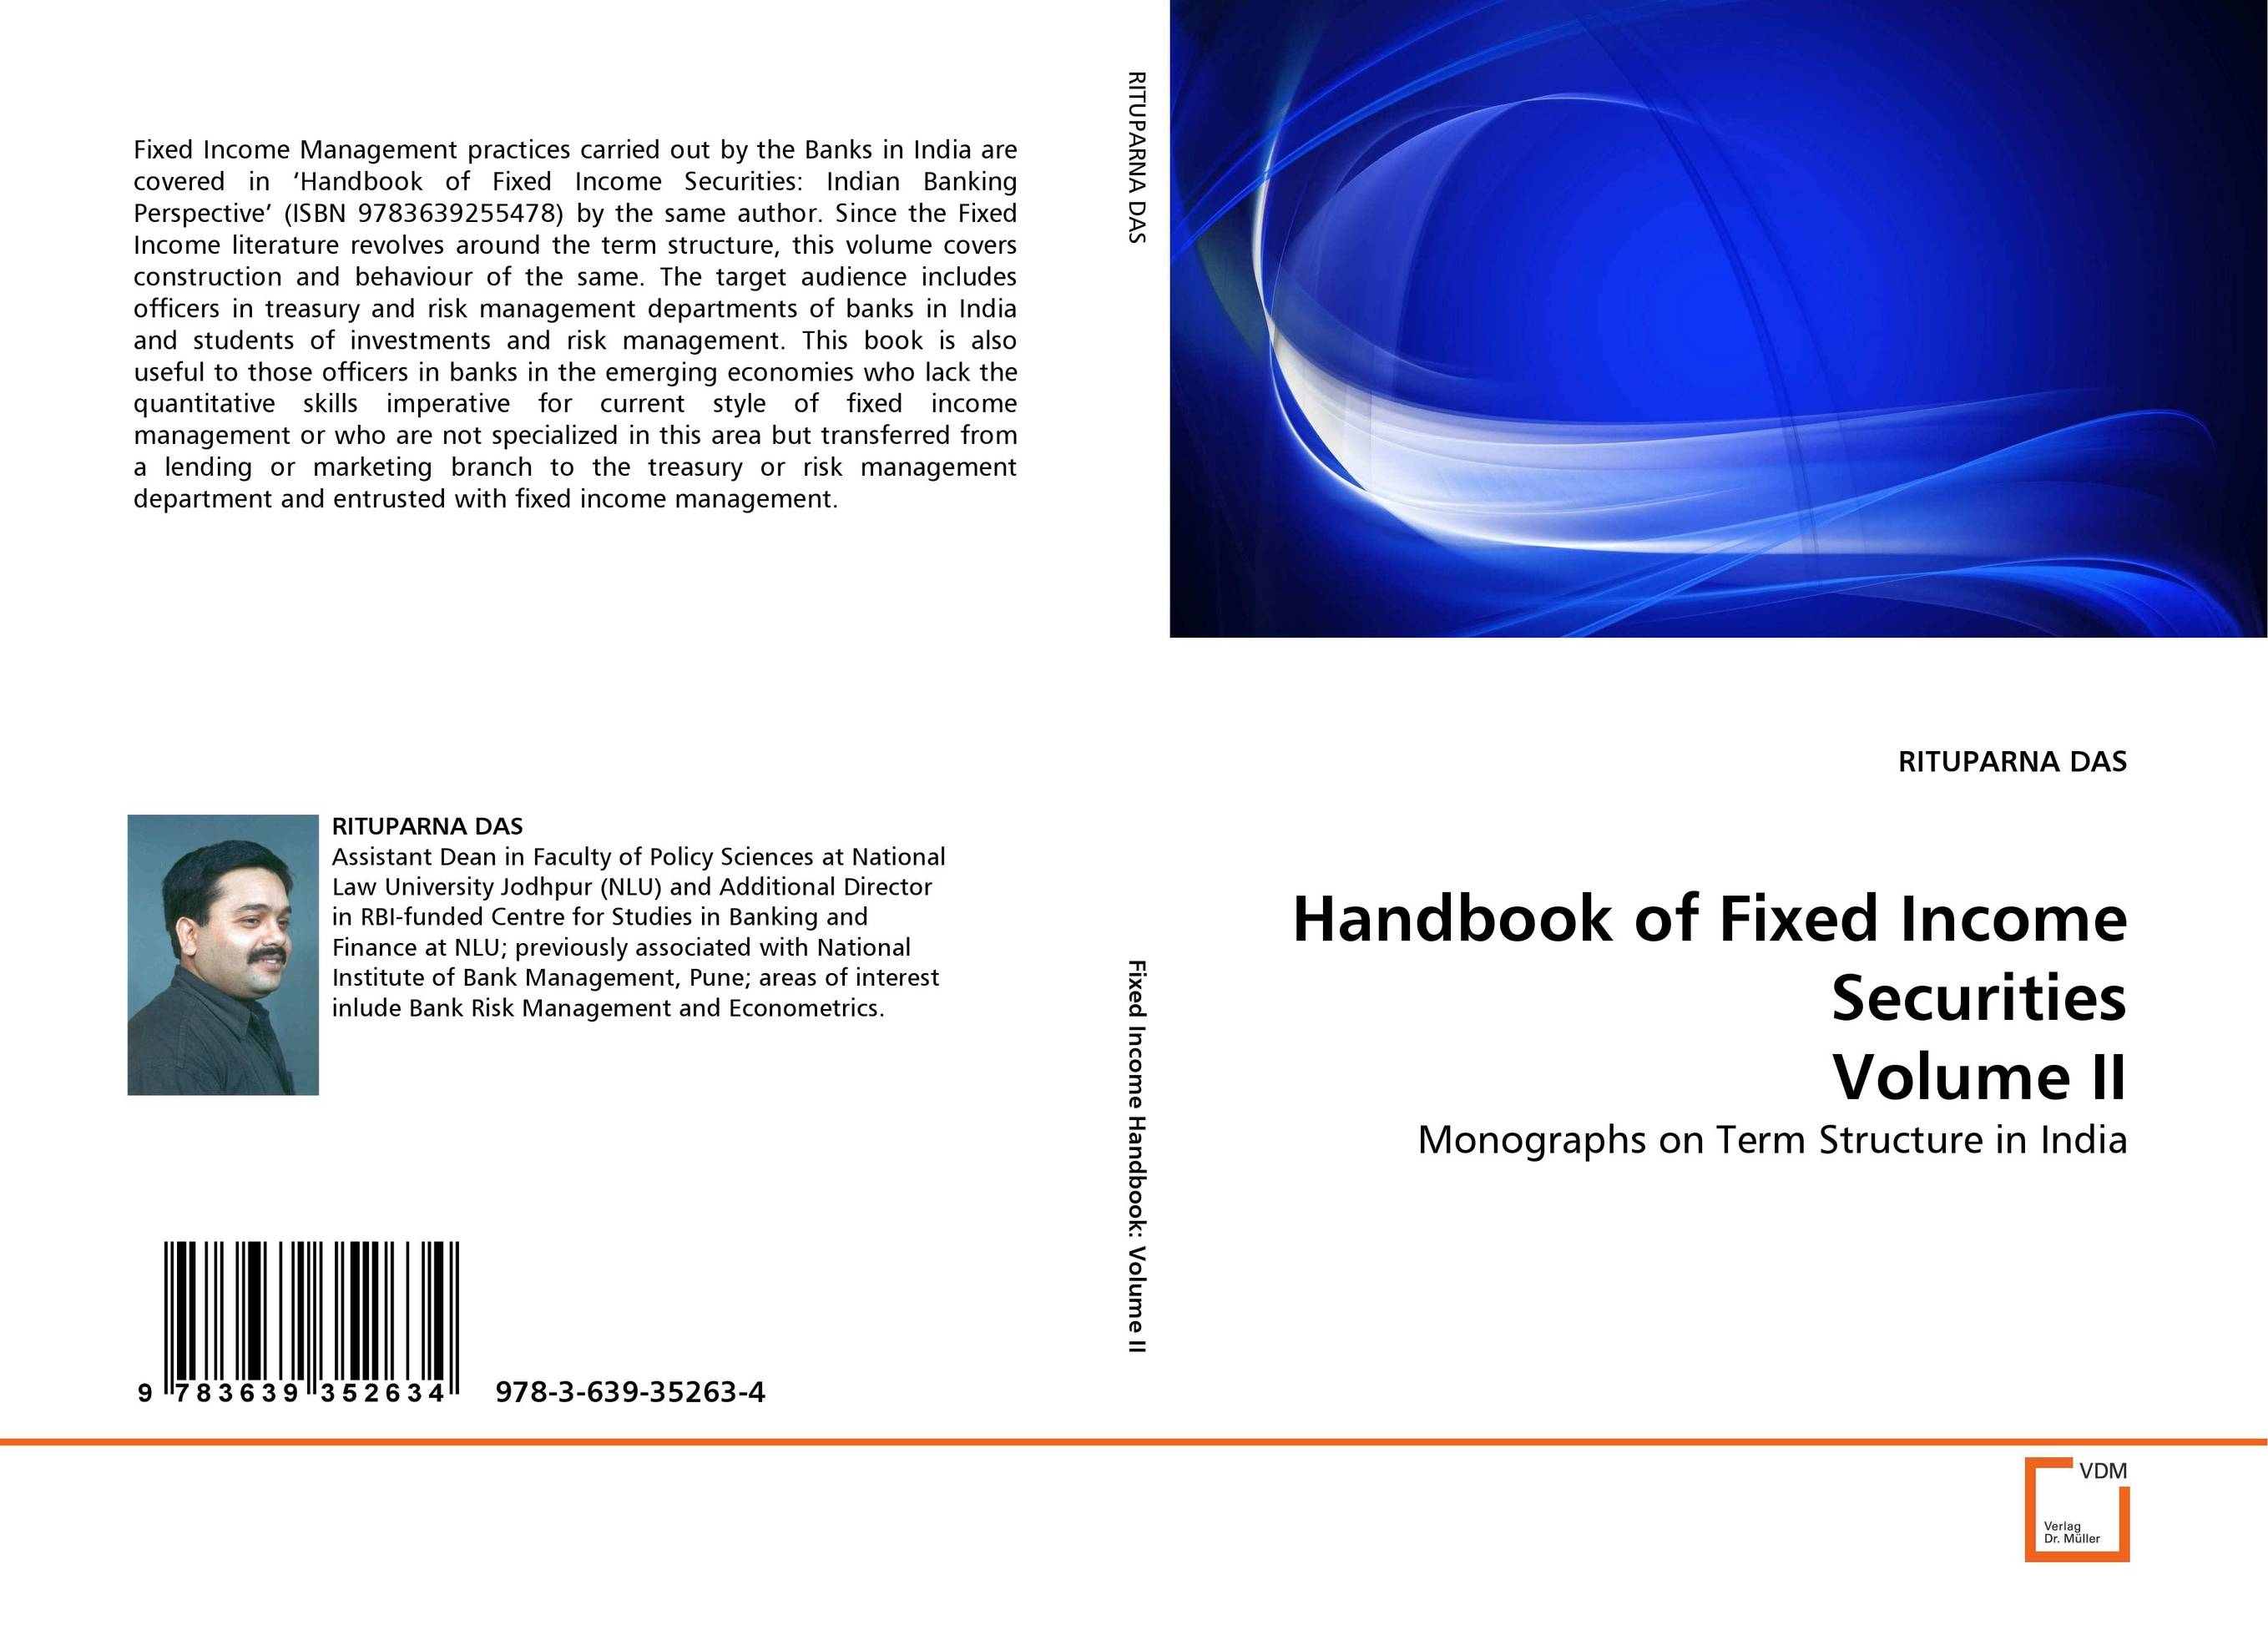 Handbook of Fixed Income Securities Volume II christian szylar handbook of market risk